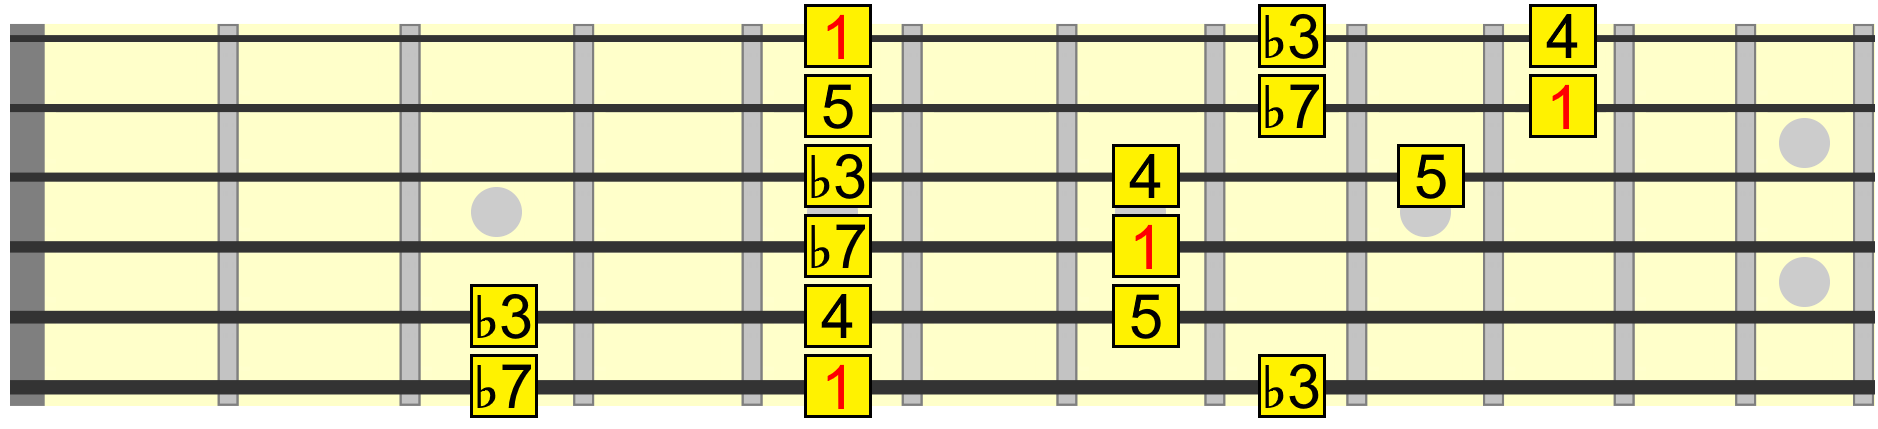 Easiest way to learn pentatonic scales